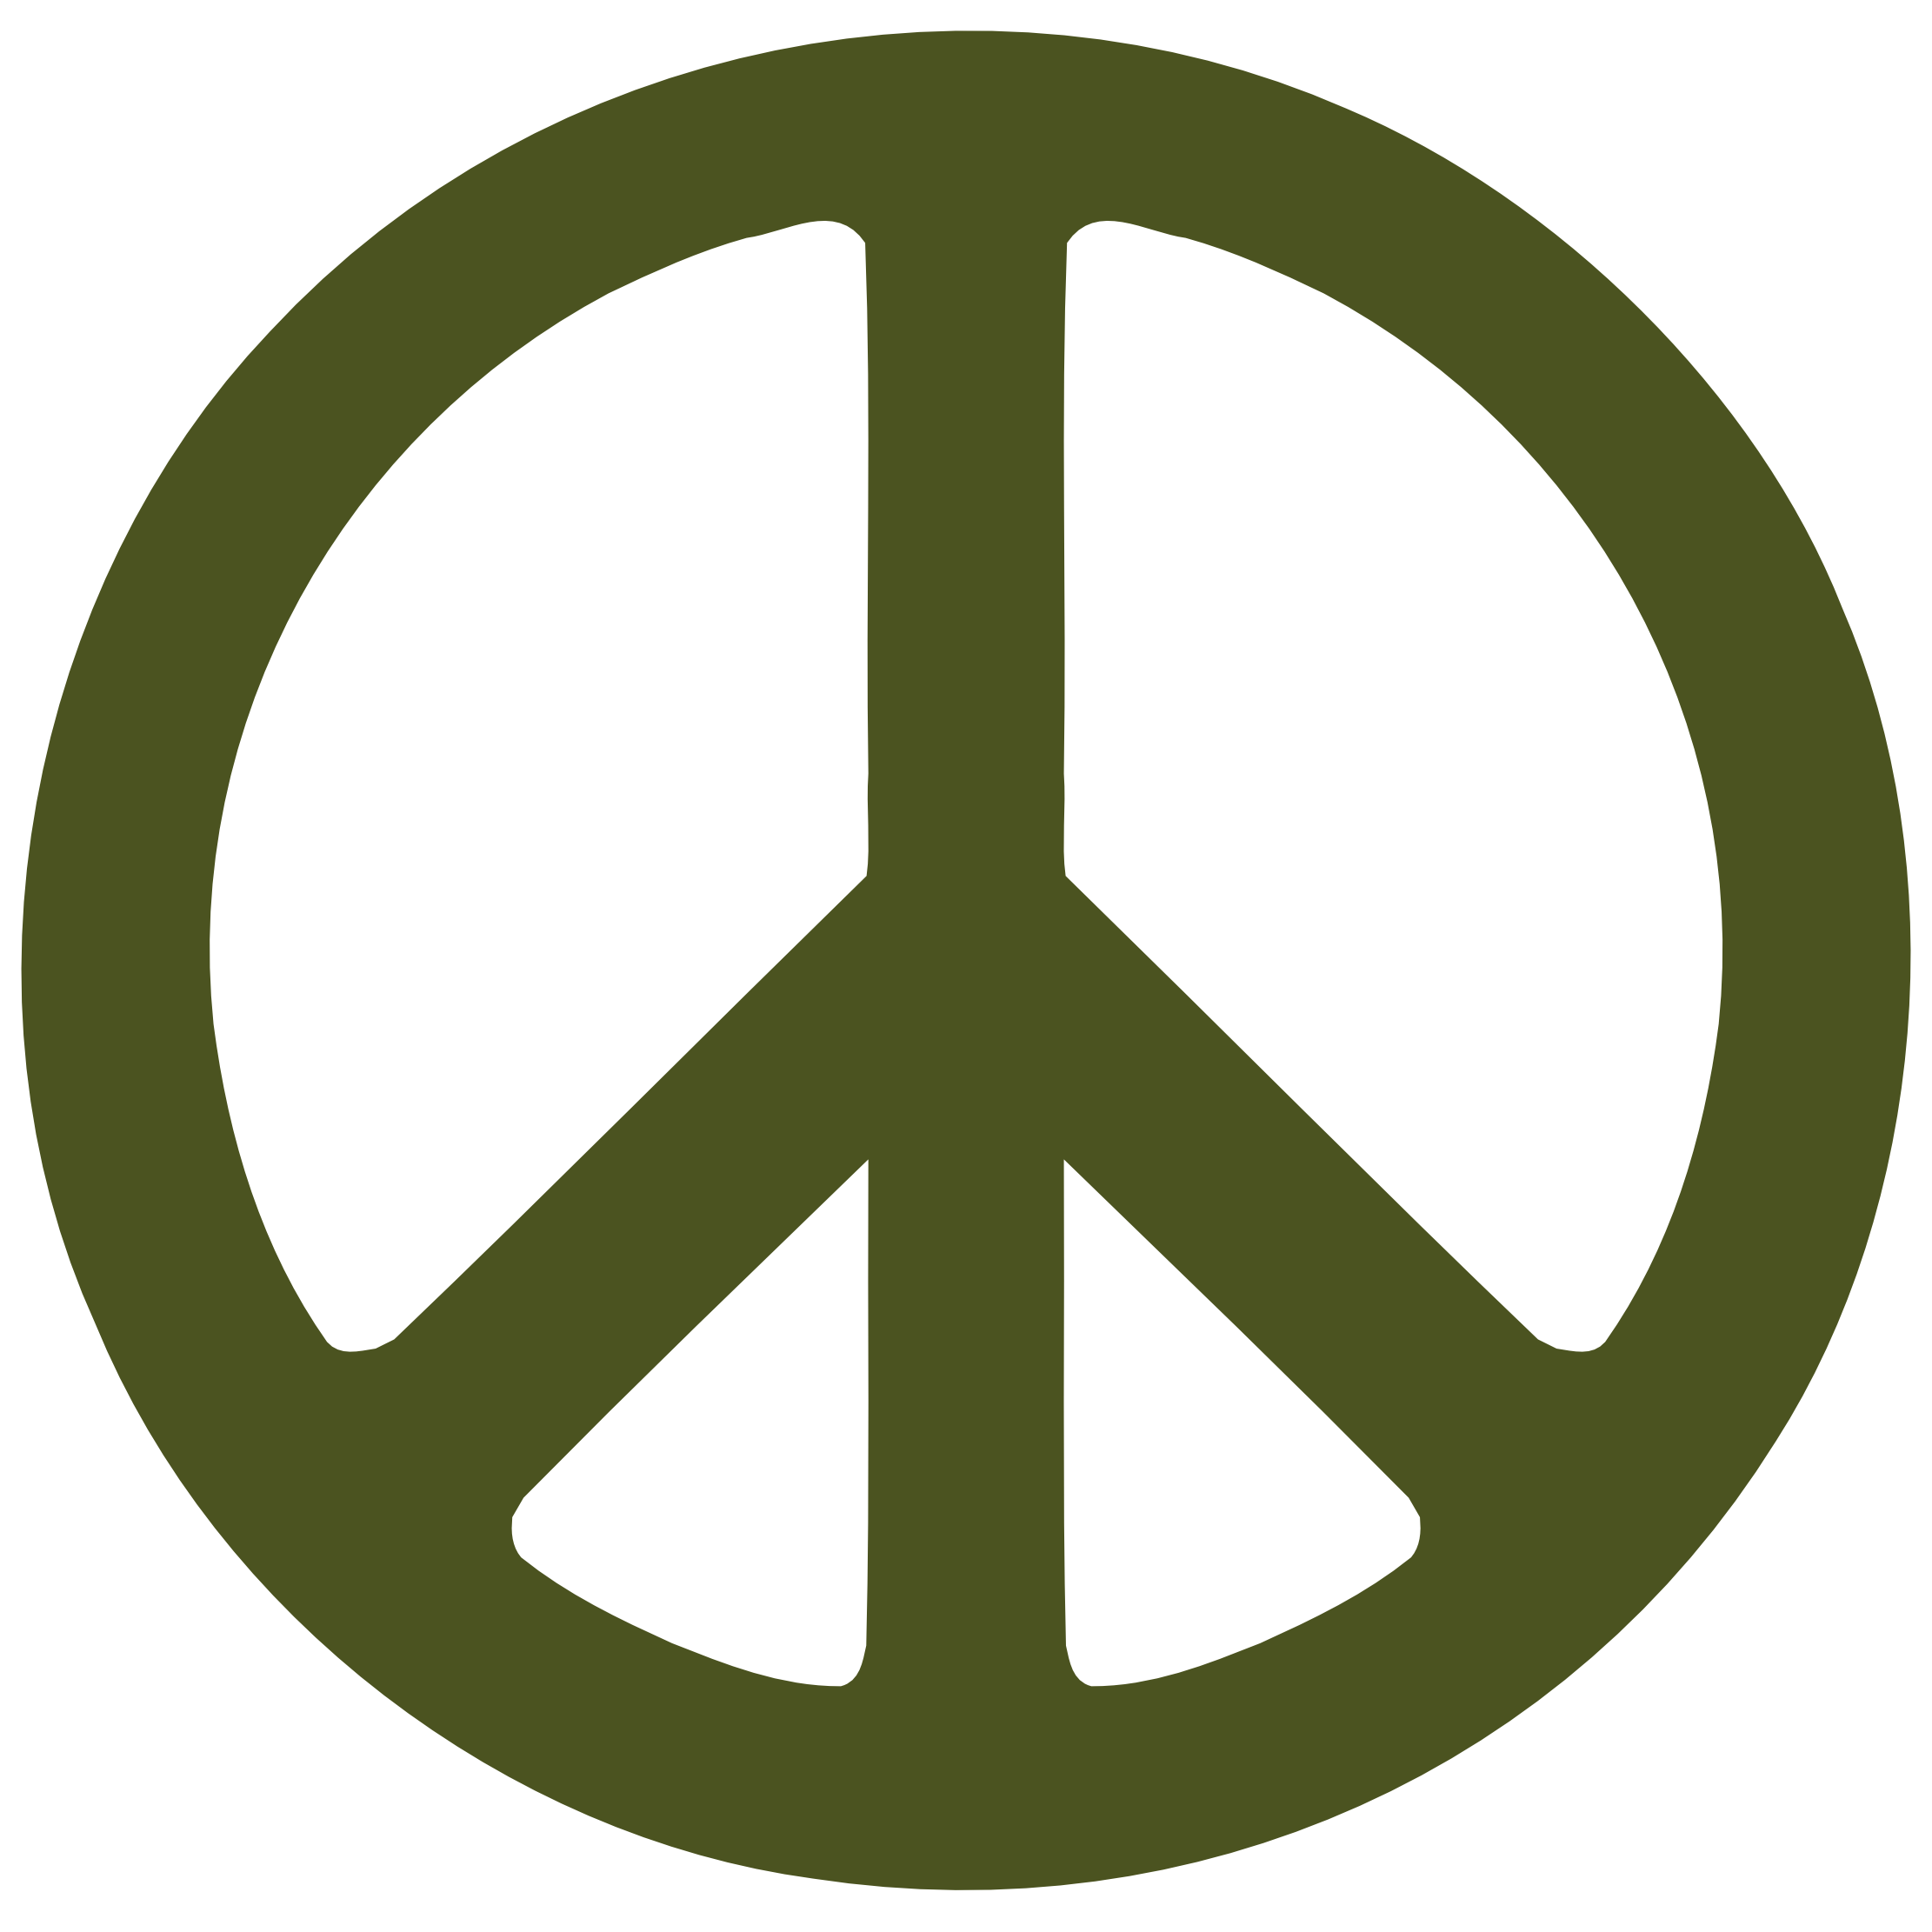 Army Star Symbol Army Green Peace Symbol 1